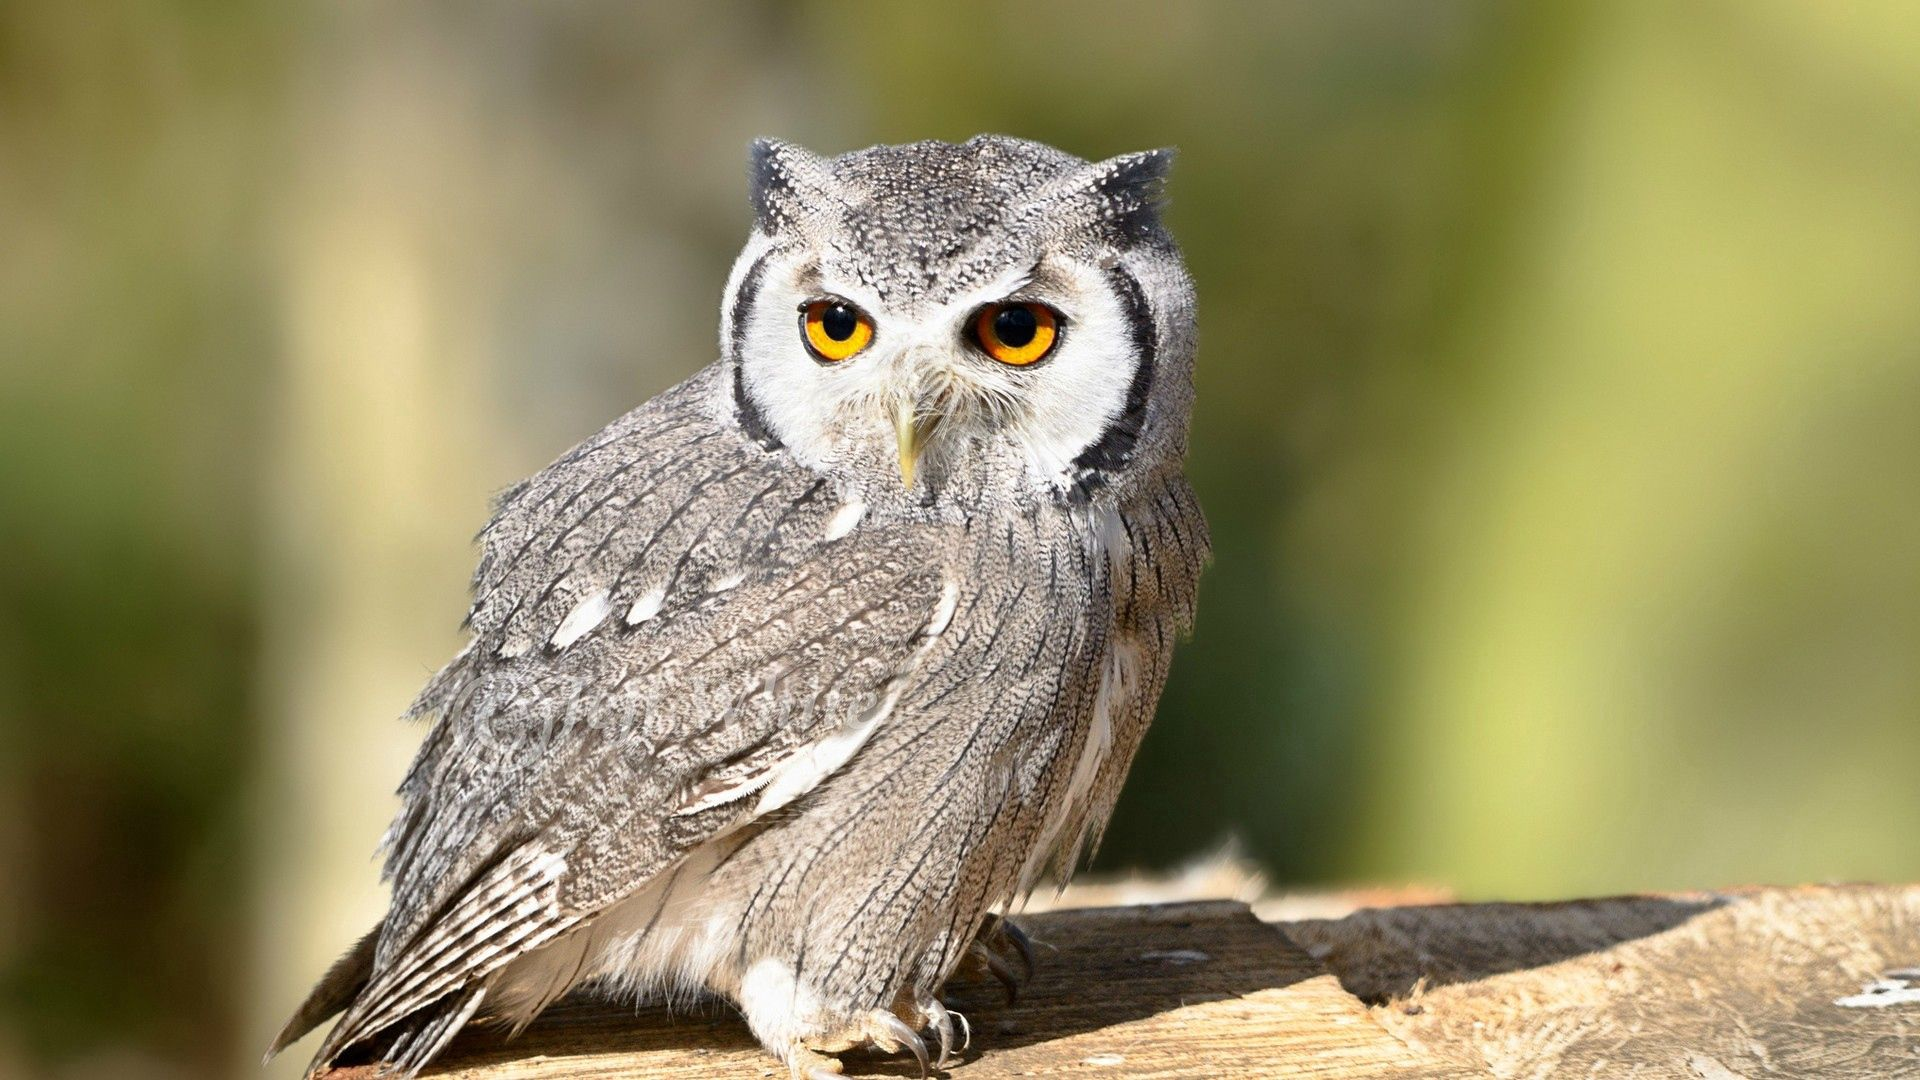 69286 download wallpaper Animals, Owl, Bird, Eyes, Predator screensavers and pictures for free